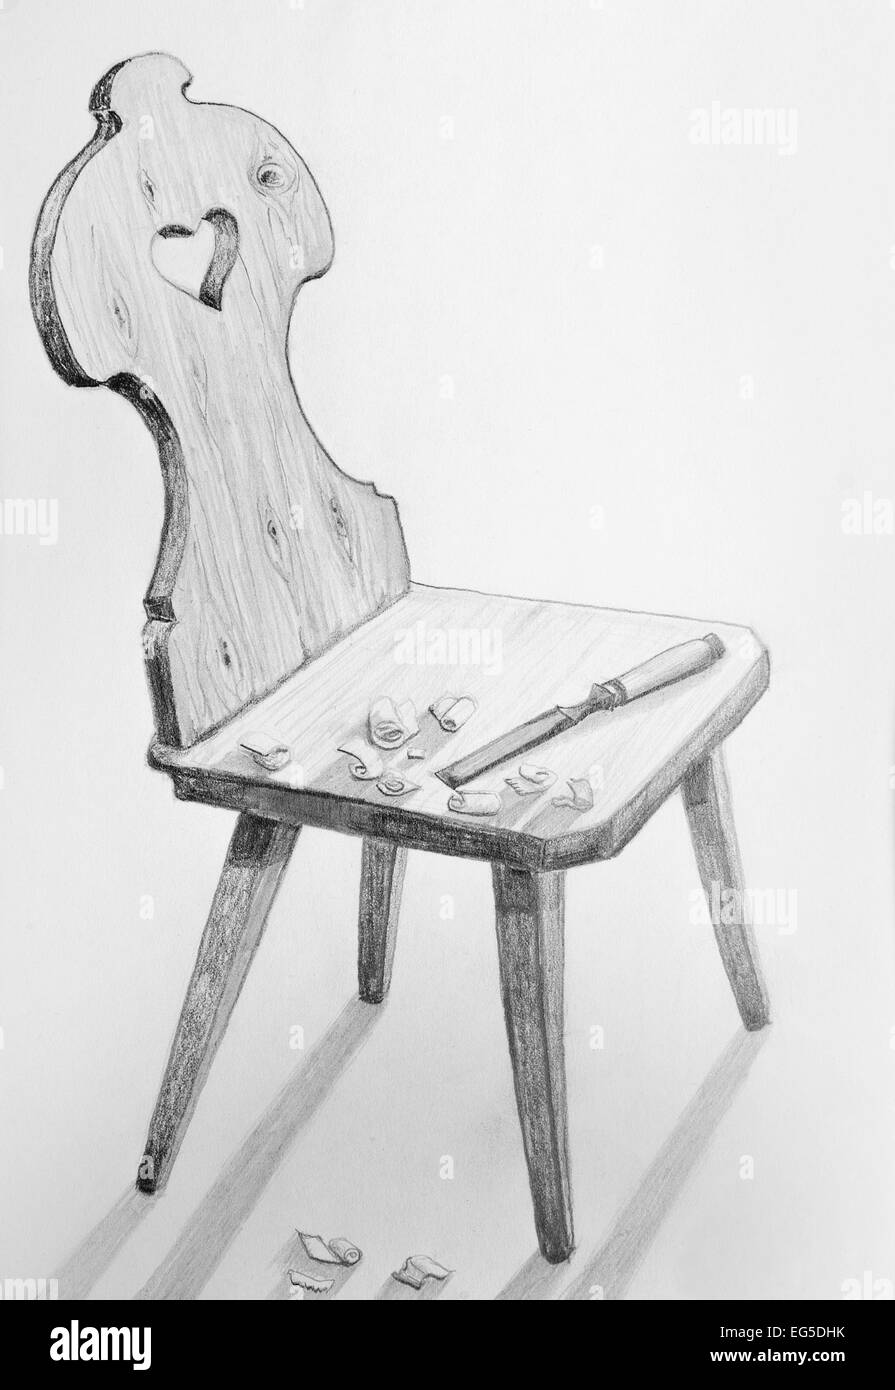 Carpentered wooden chair with a carving tool and wood chips gray